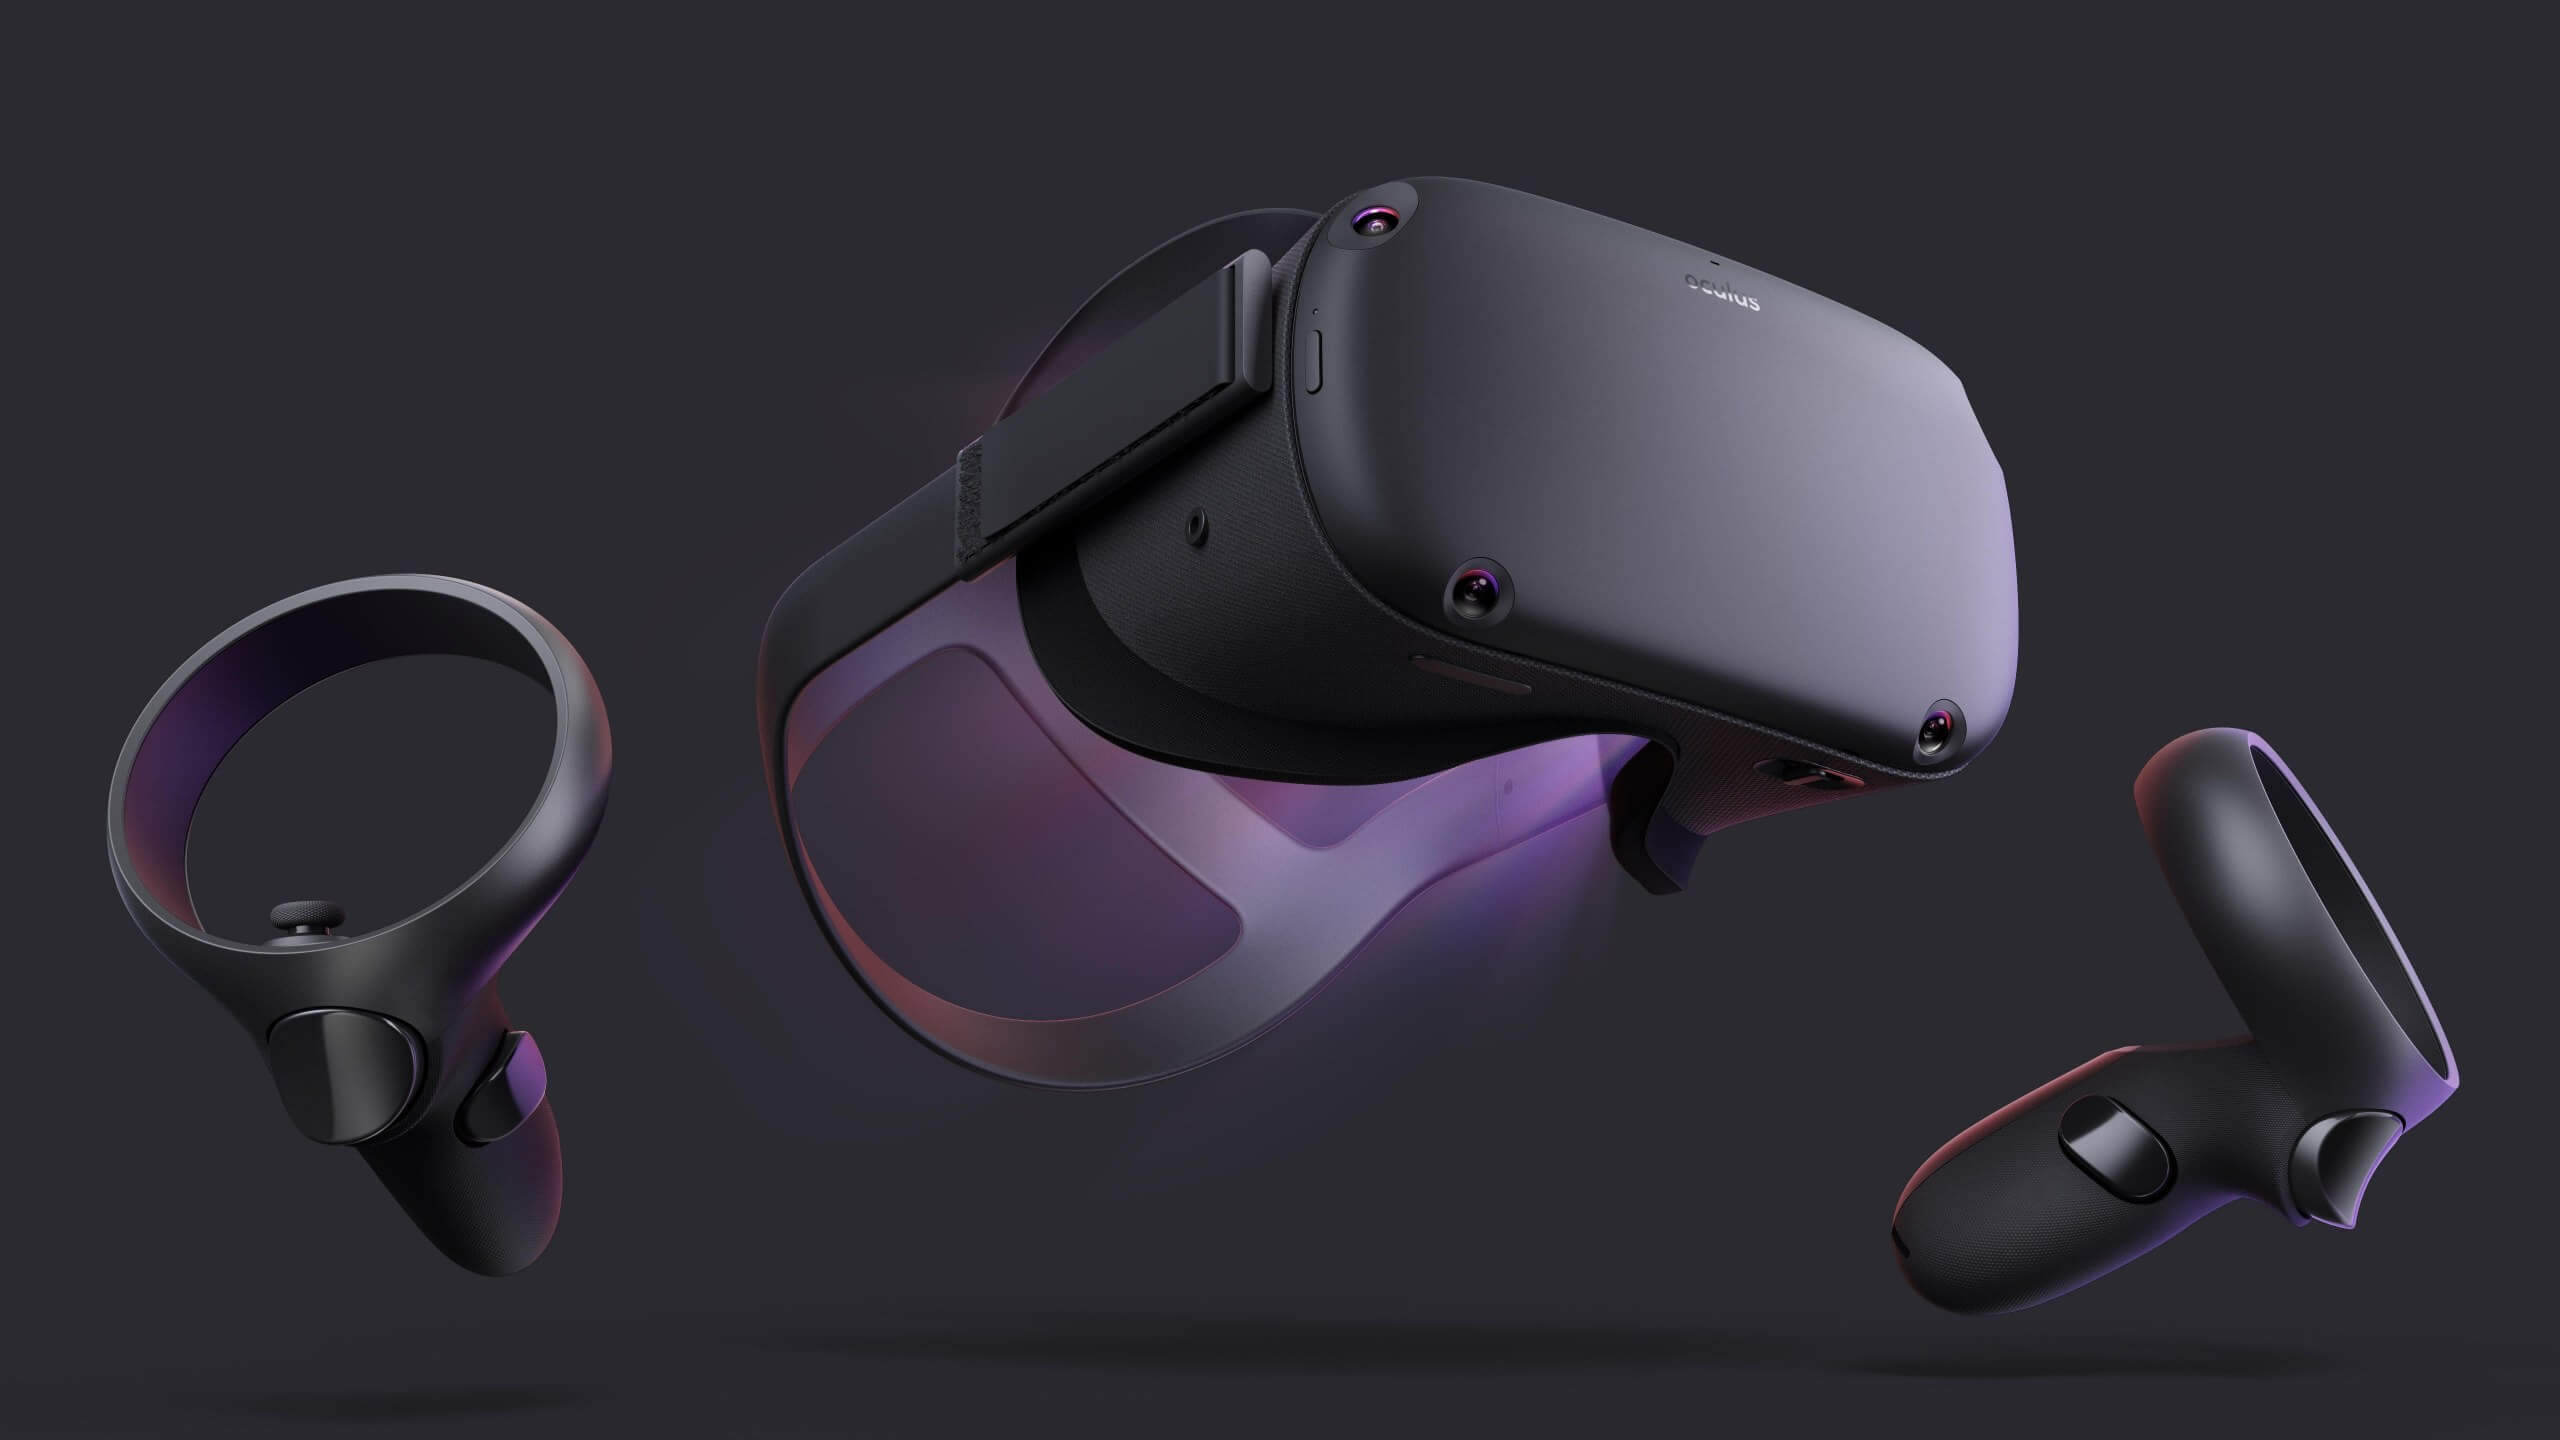 SteamVR streaming is not allowed on Oculus Quest - TechSpot